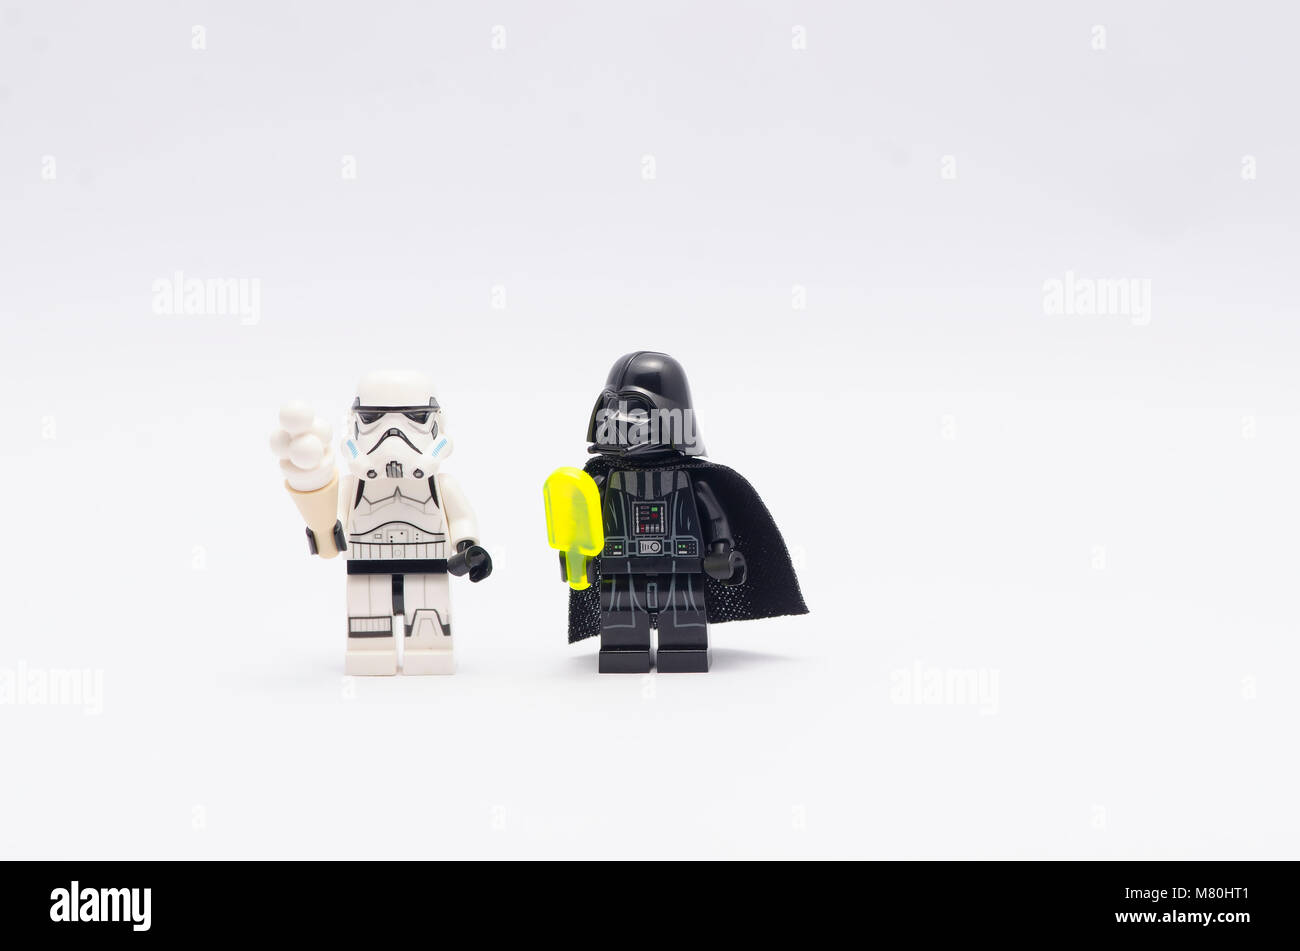 Lego Darth Vader And Storm Trooper Holding Ice Cream Isolated On White Background